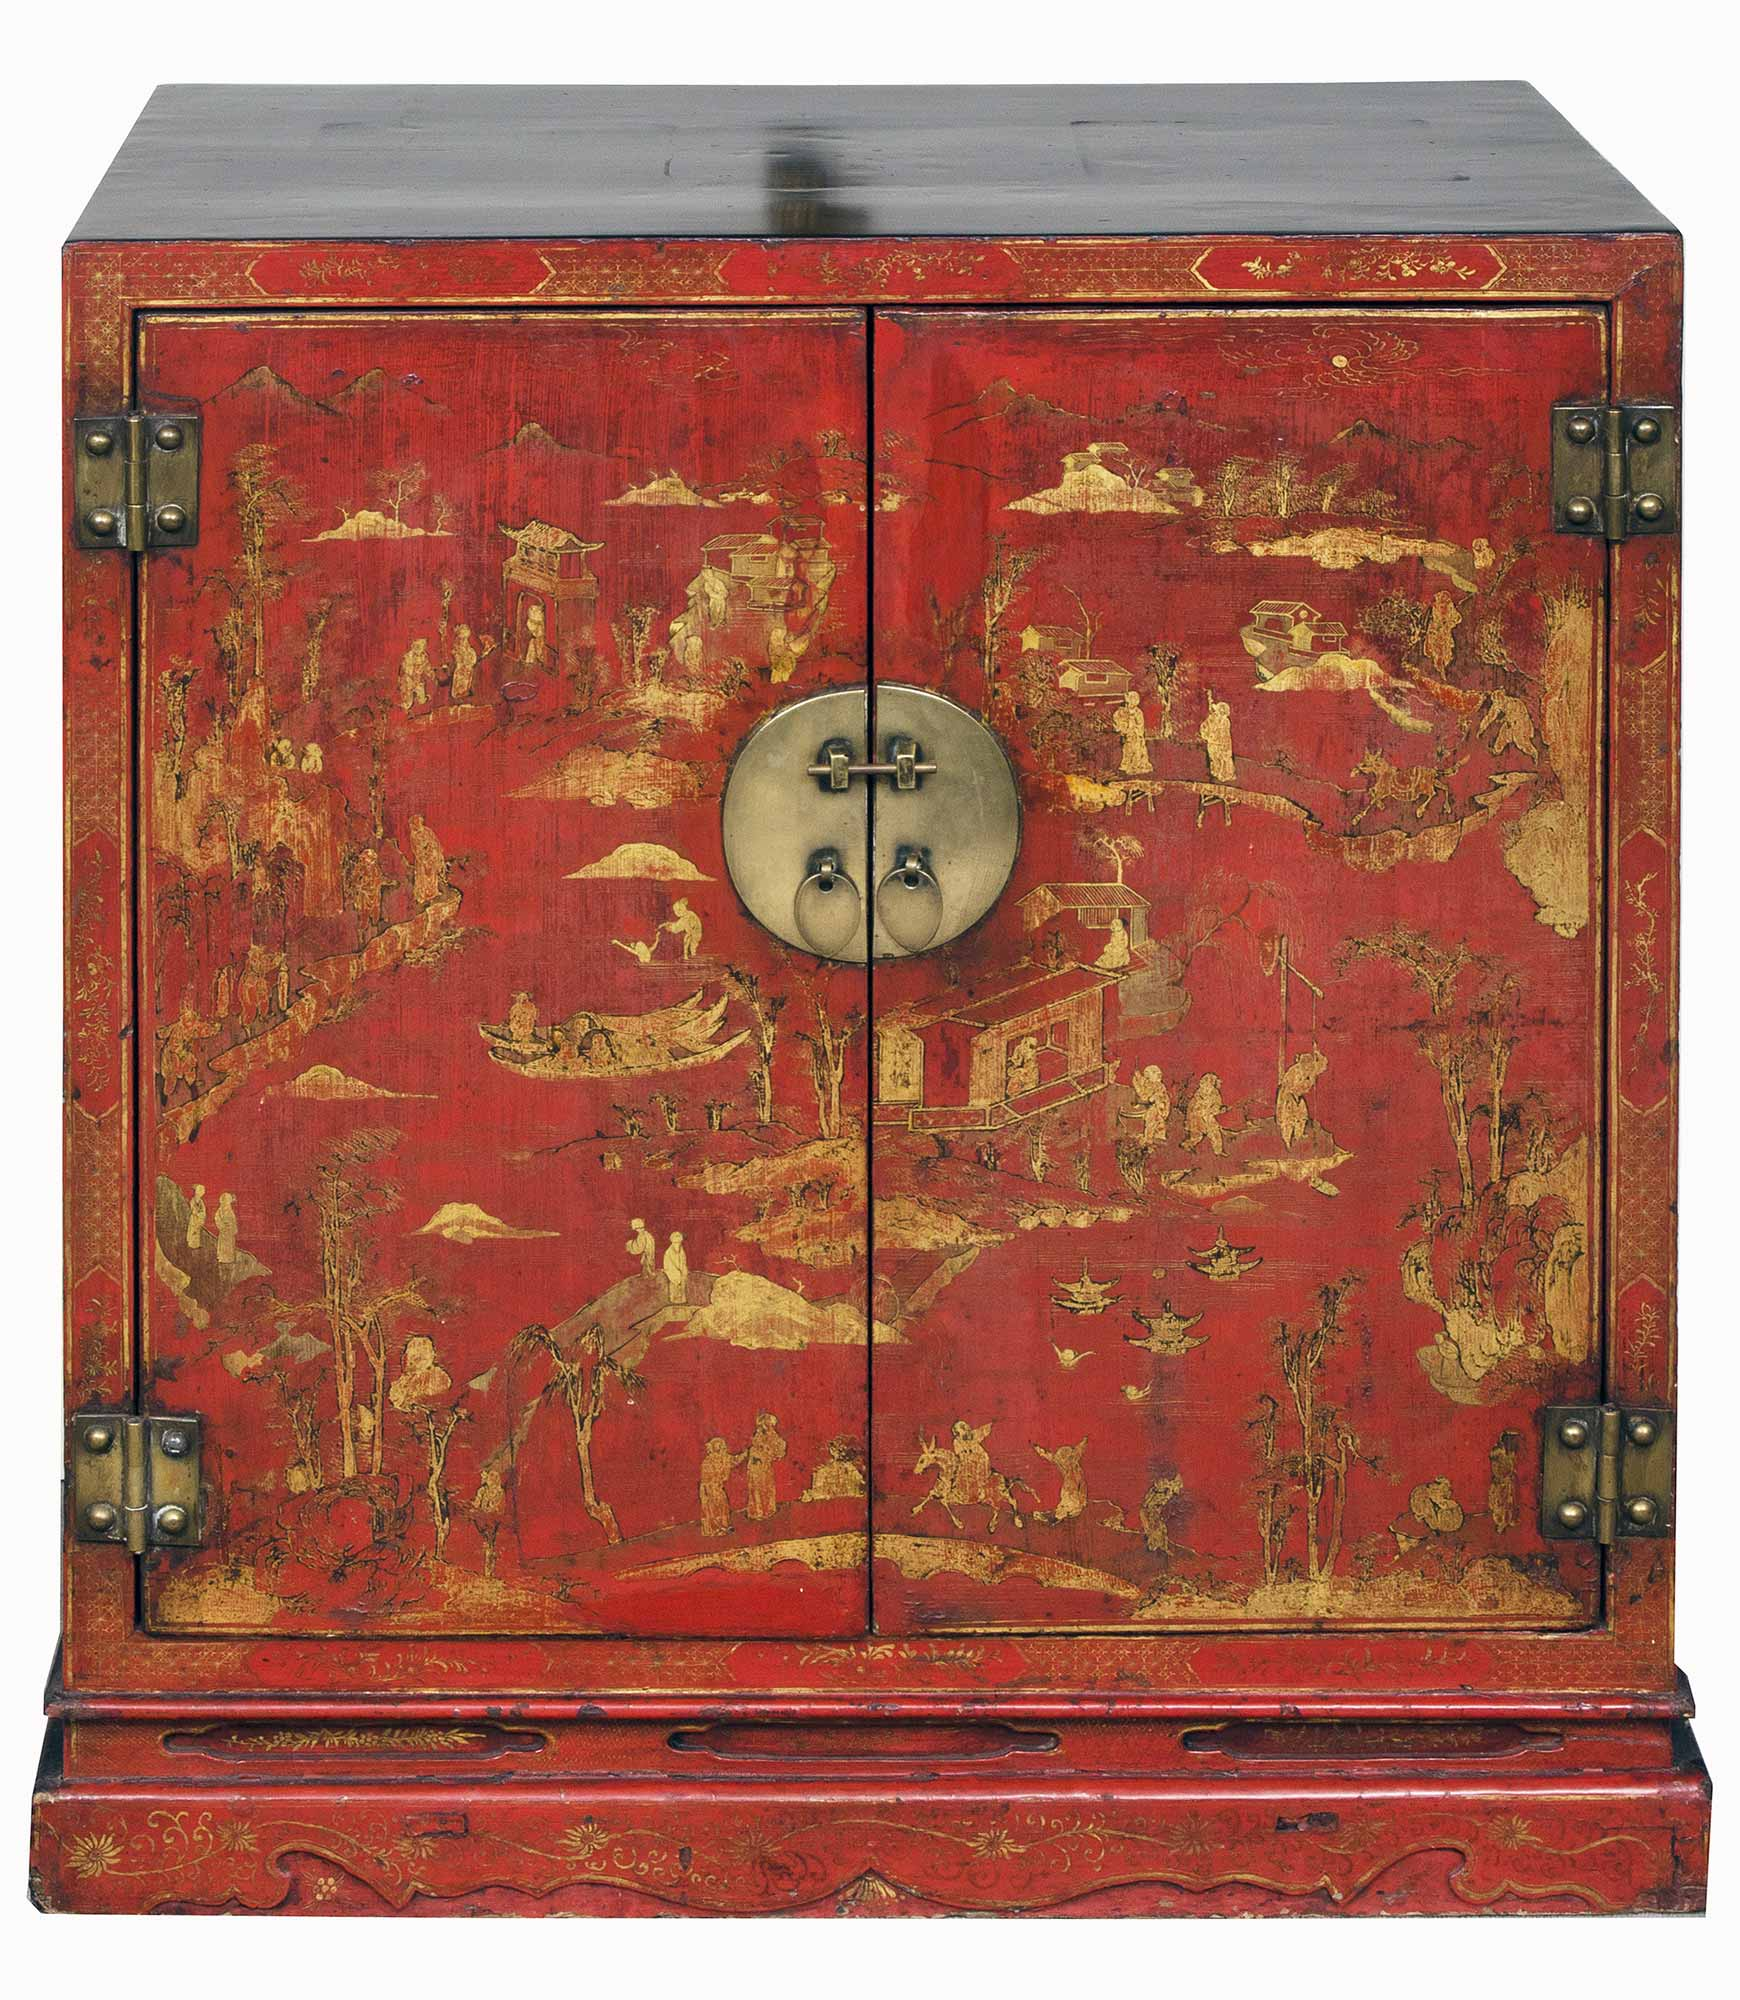 Chinese period red lacquered gilded cabinet for Chinese antique furniture singapore